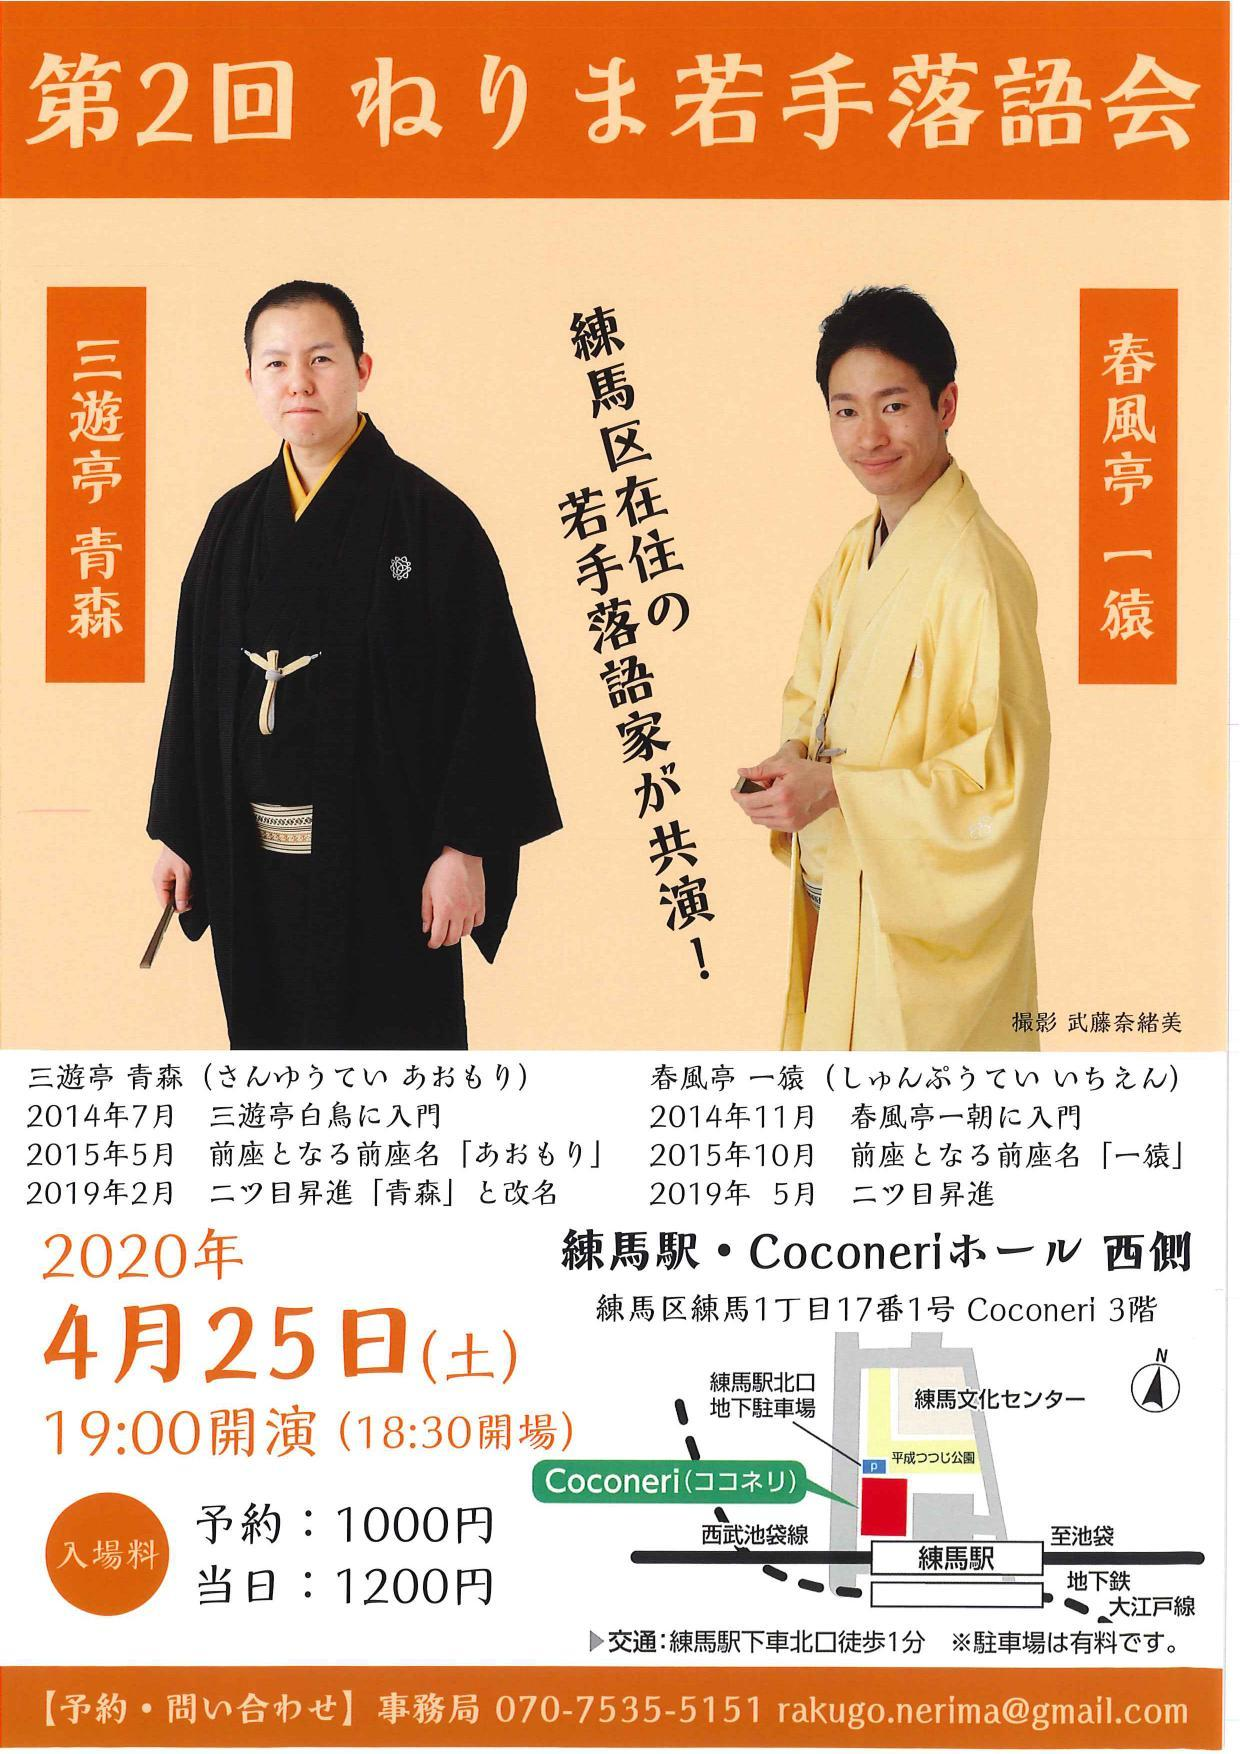 The second nerima young person rakugo society